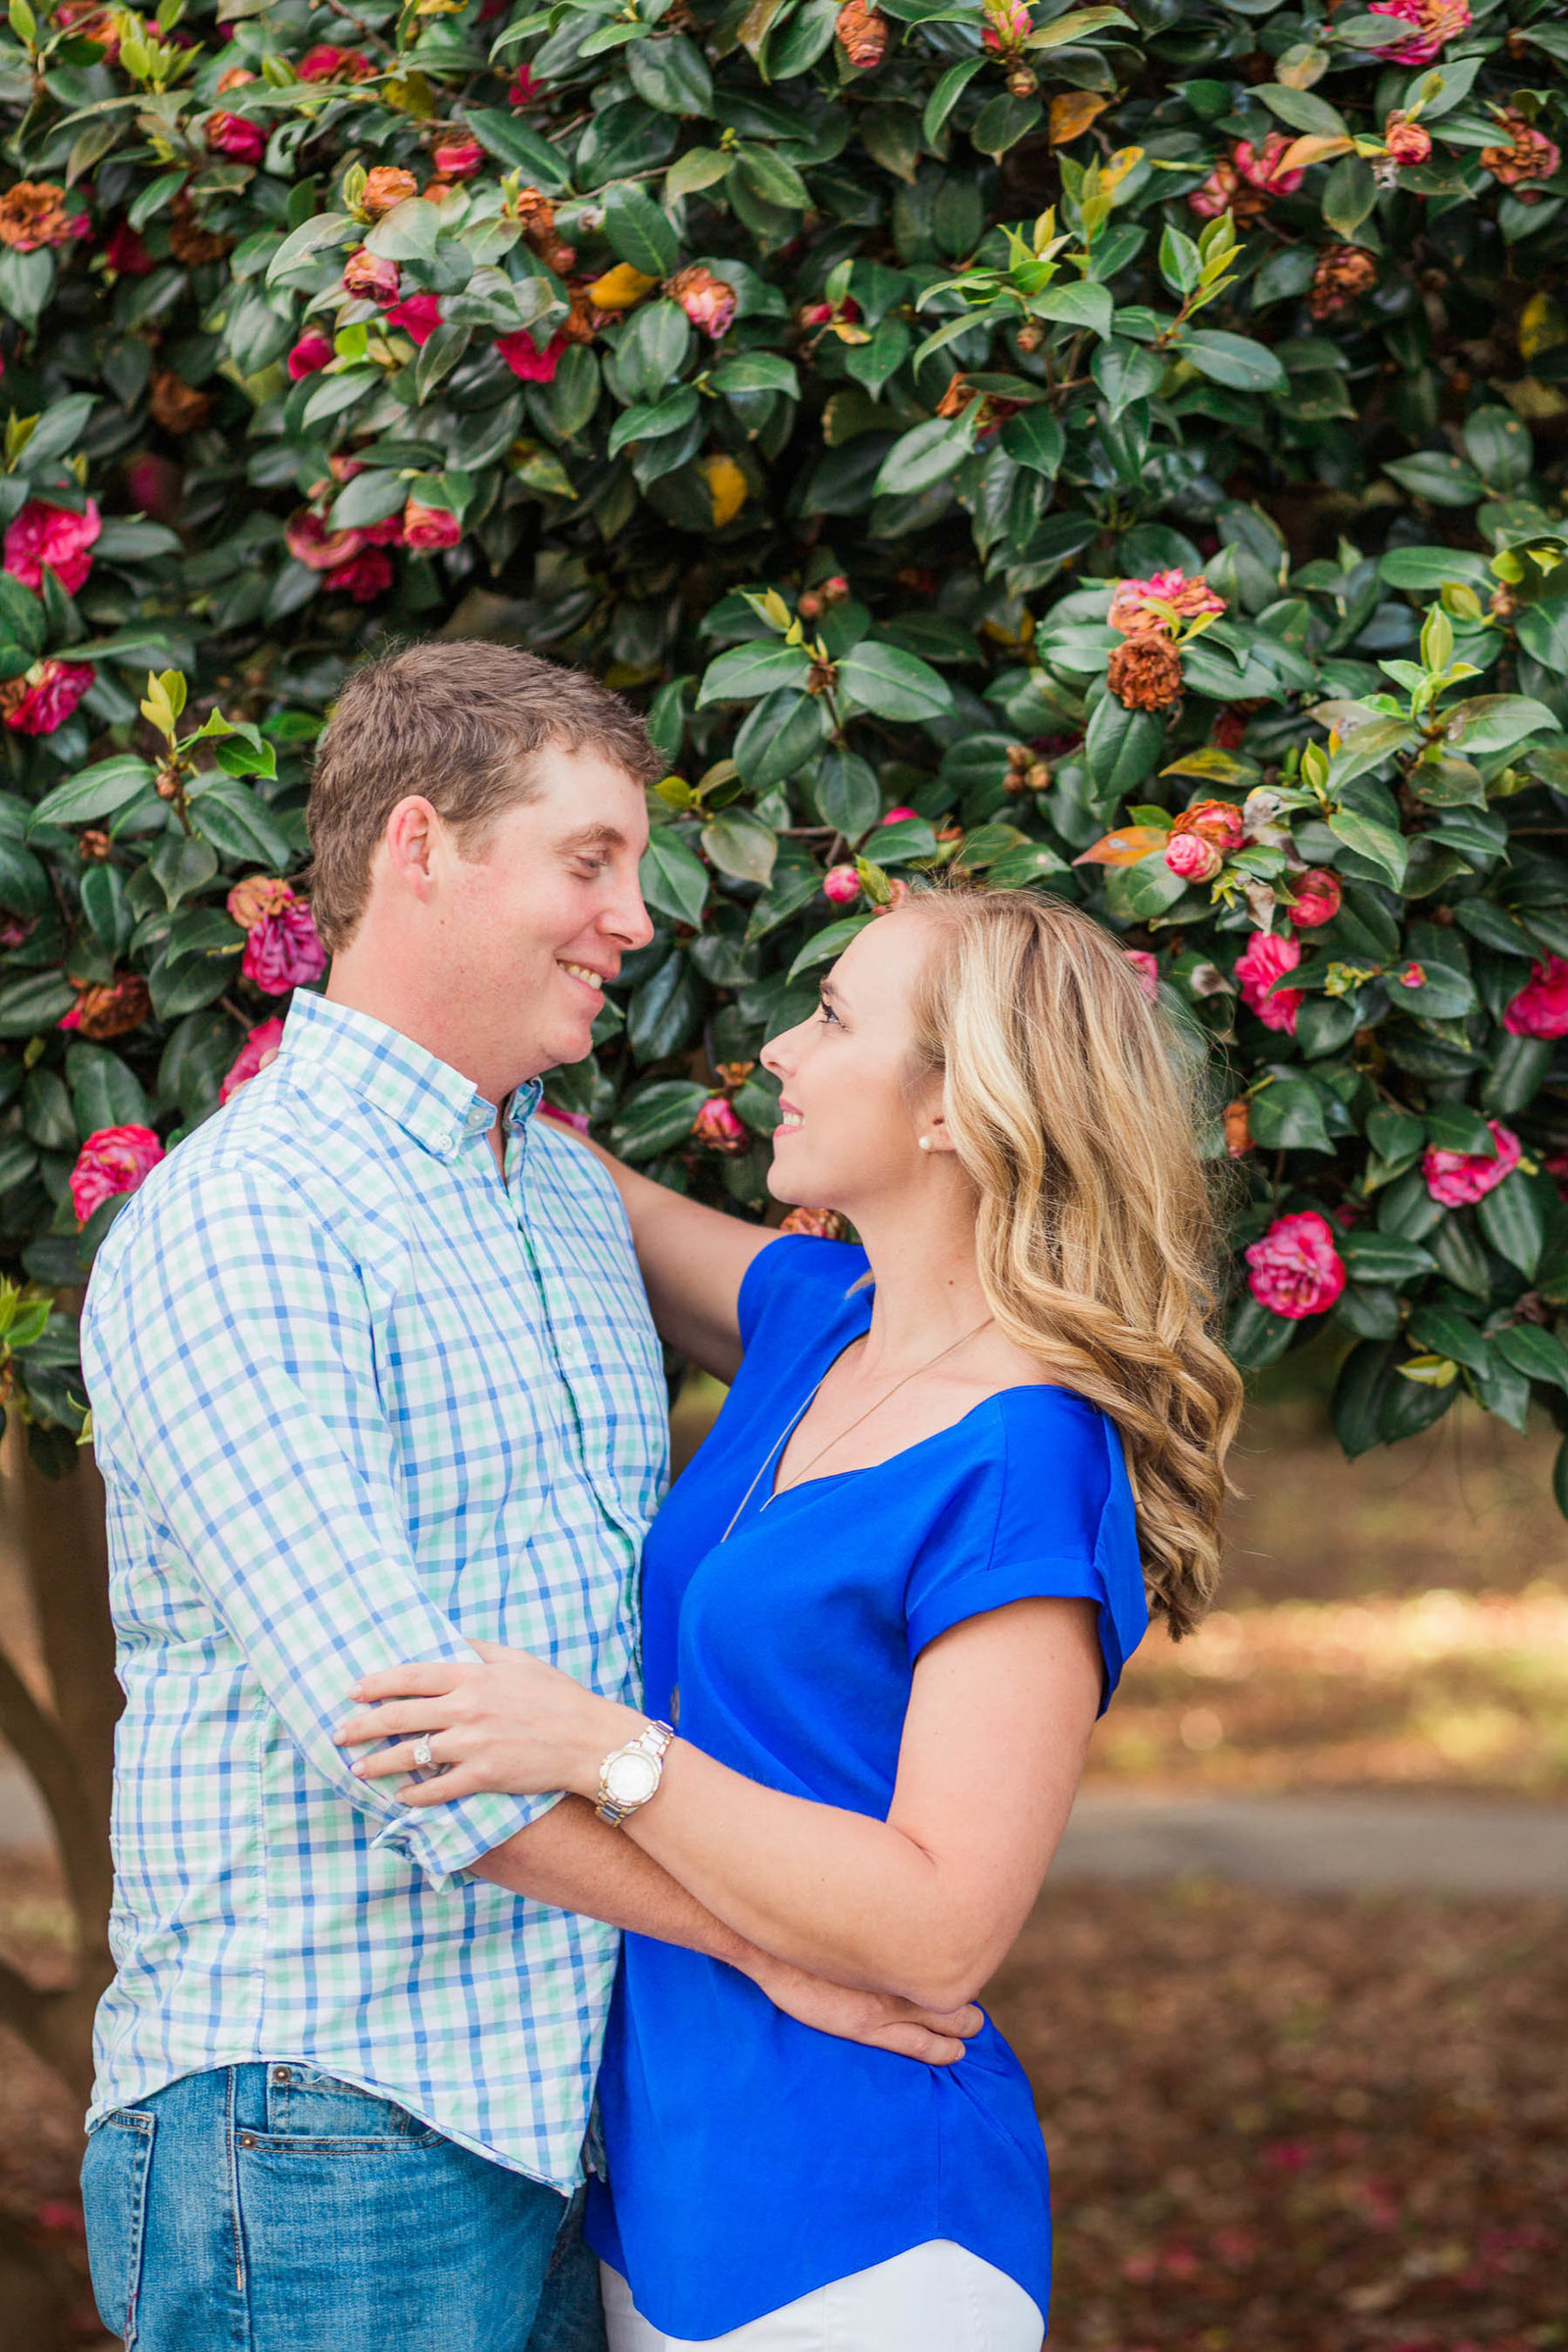 Engaged couple poses in front of tree with red flowers, Hampton Park, Charleston, South Carolina